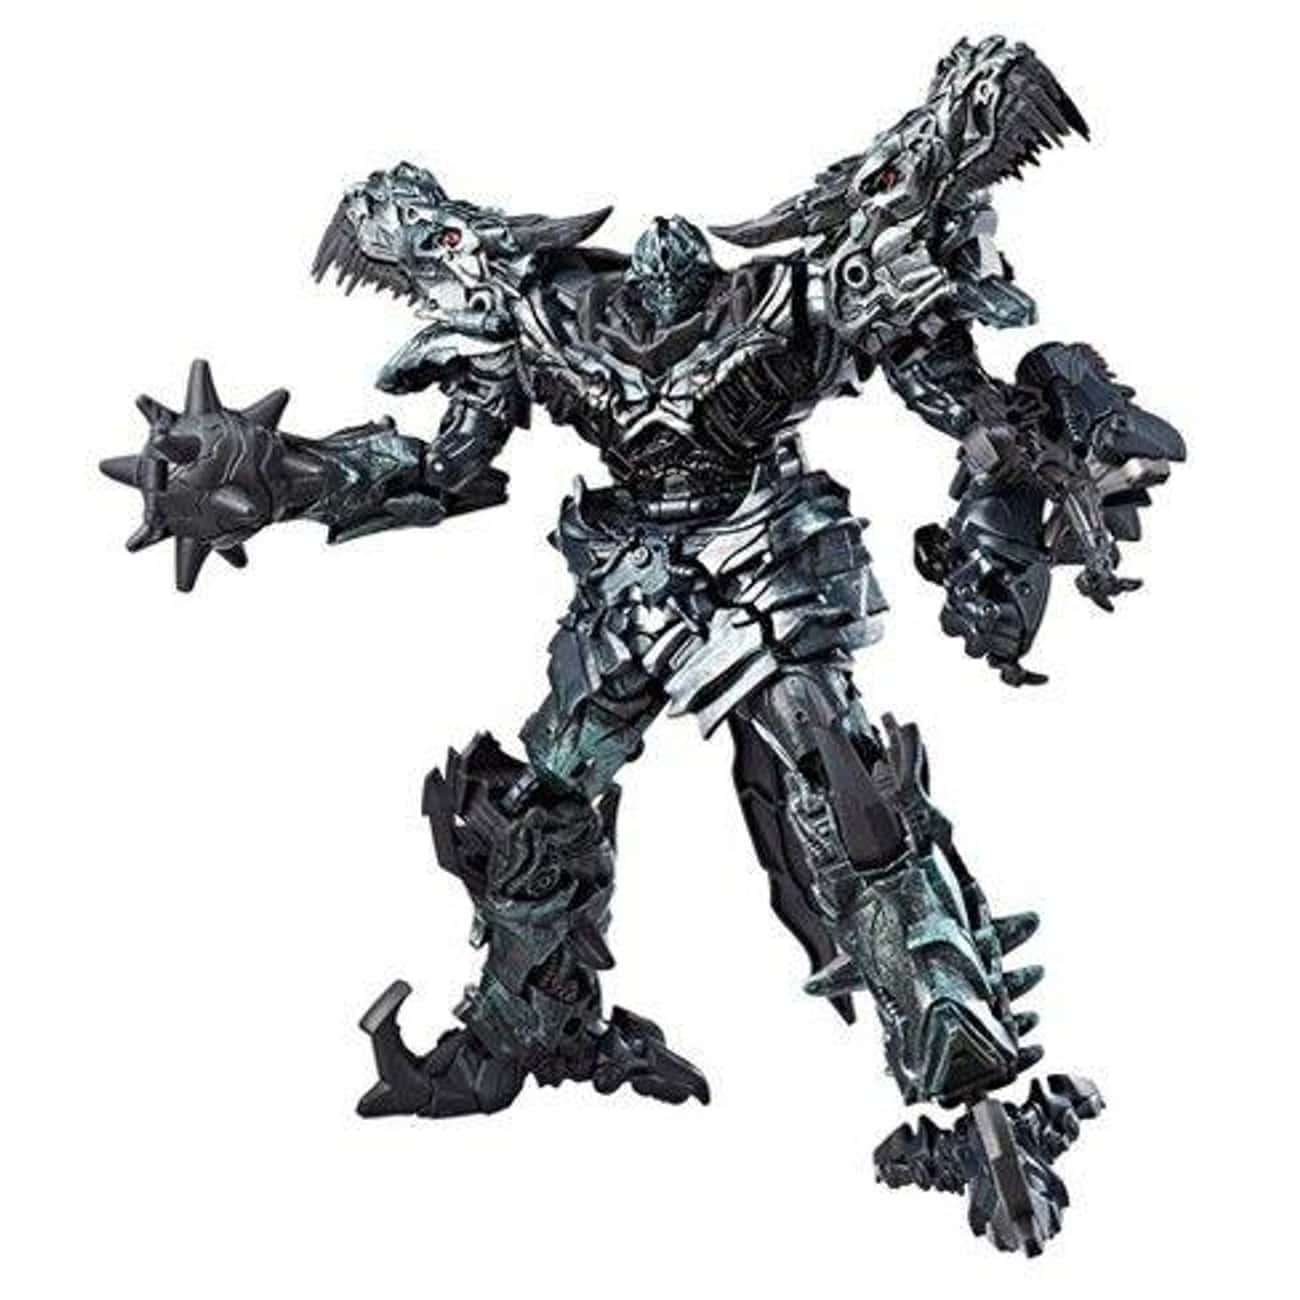 Transformers Studio Series 07  is listed (or ranked) 4 on the list The Best Transformers: Studio Series Toys, Ranked